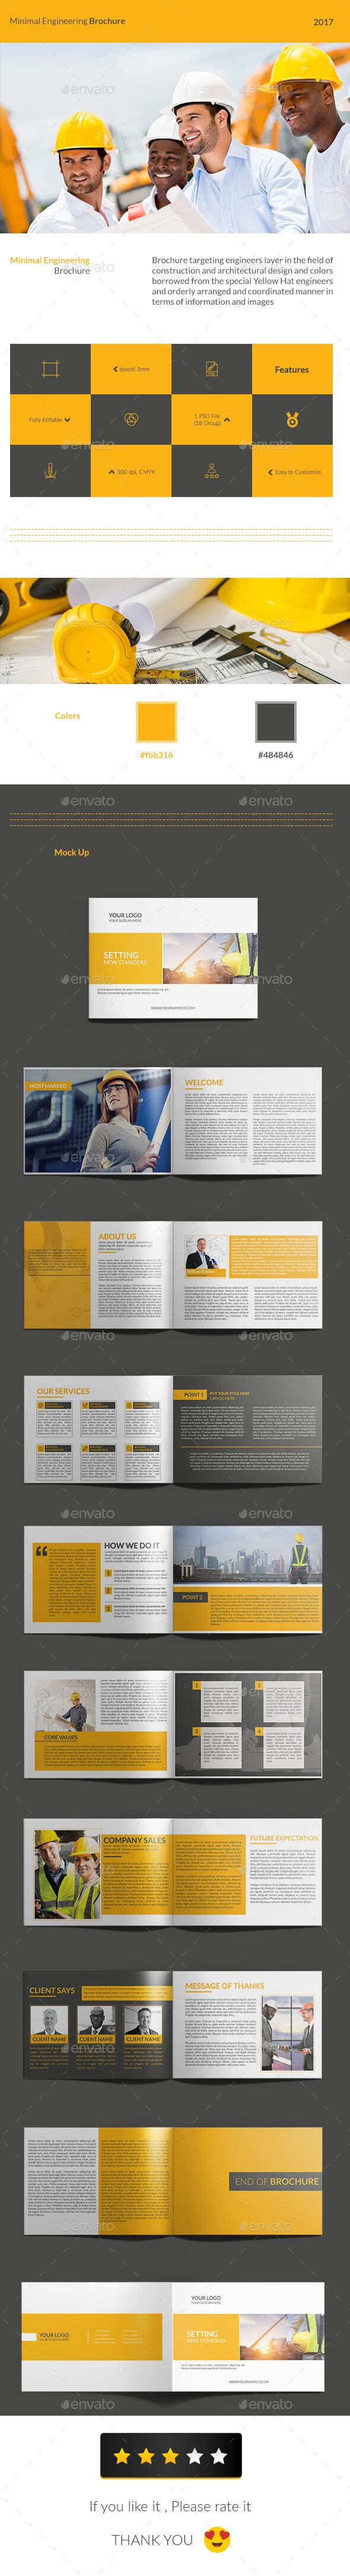 Minimal Engineering Brochure | Brochure Templates | Brochure Pertaining To Engineering Brochure Templates